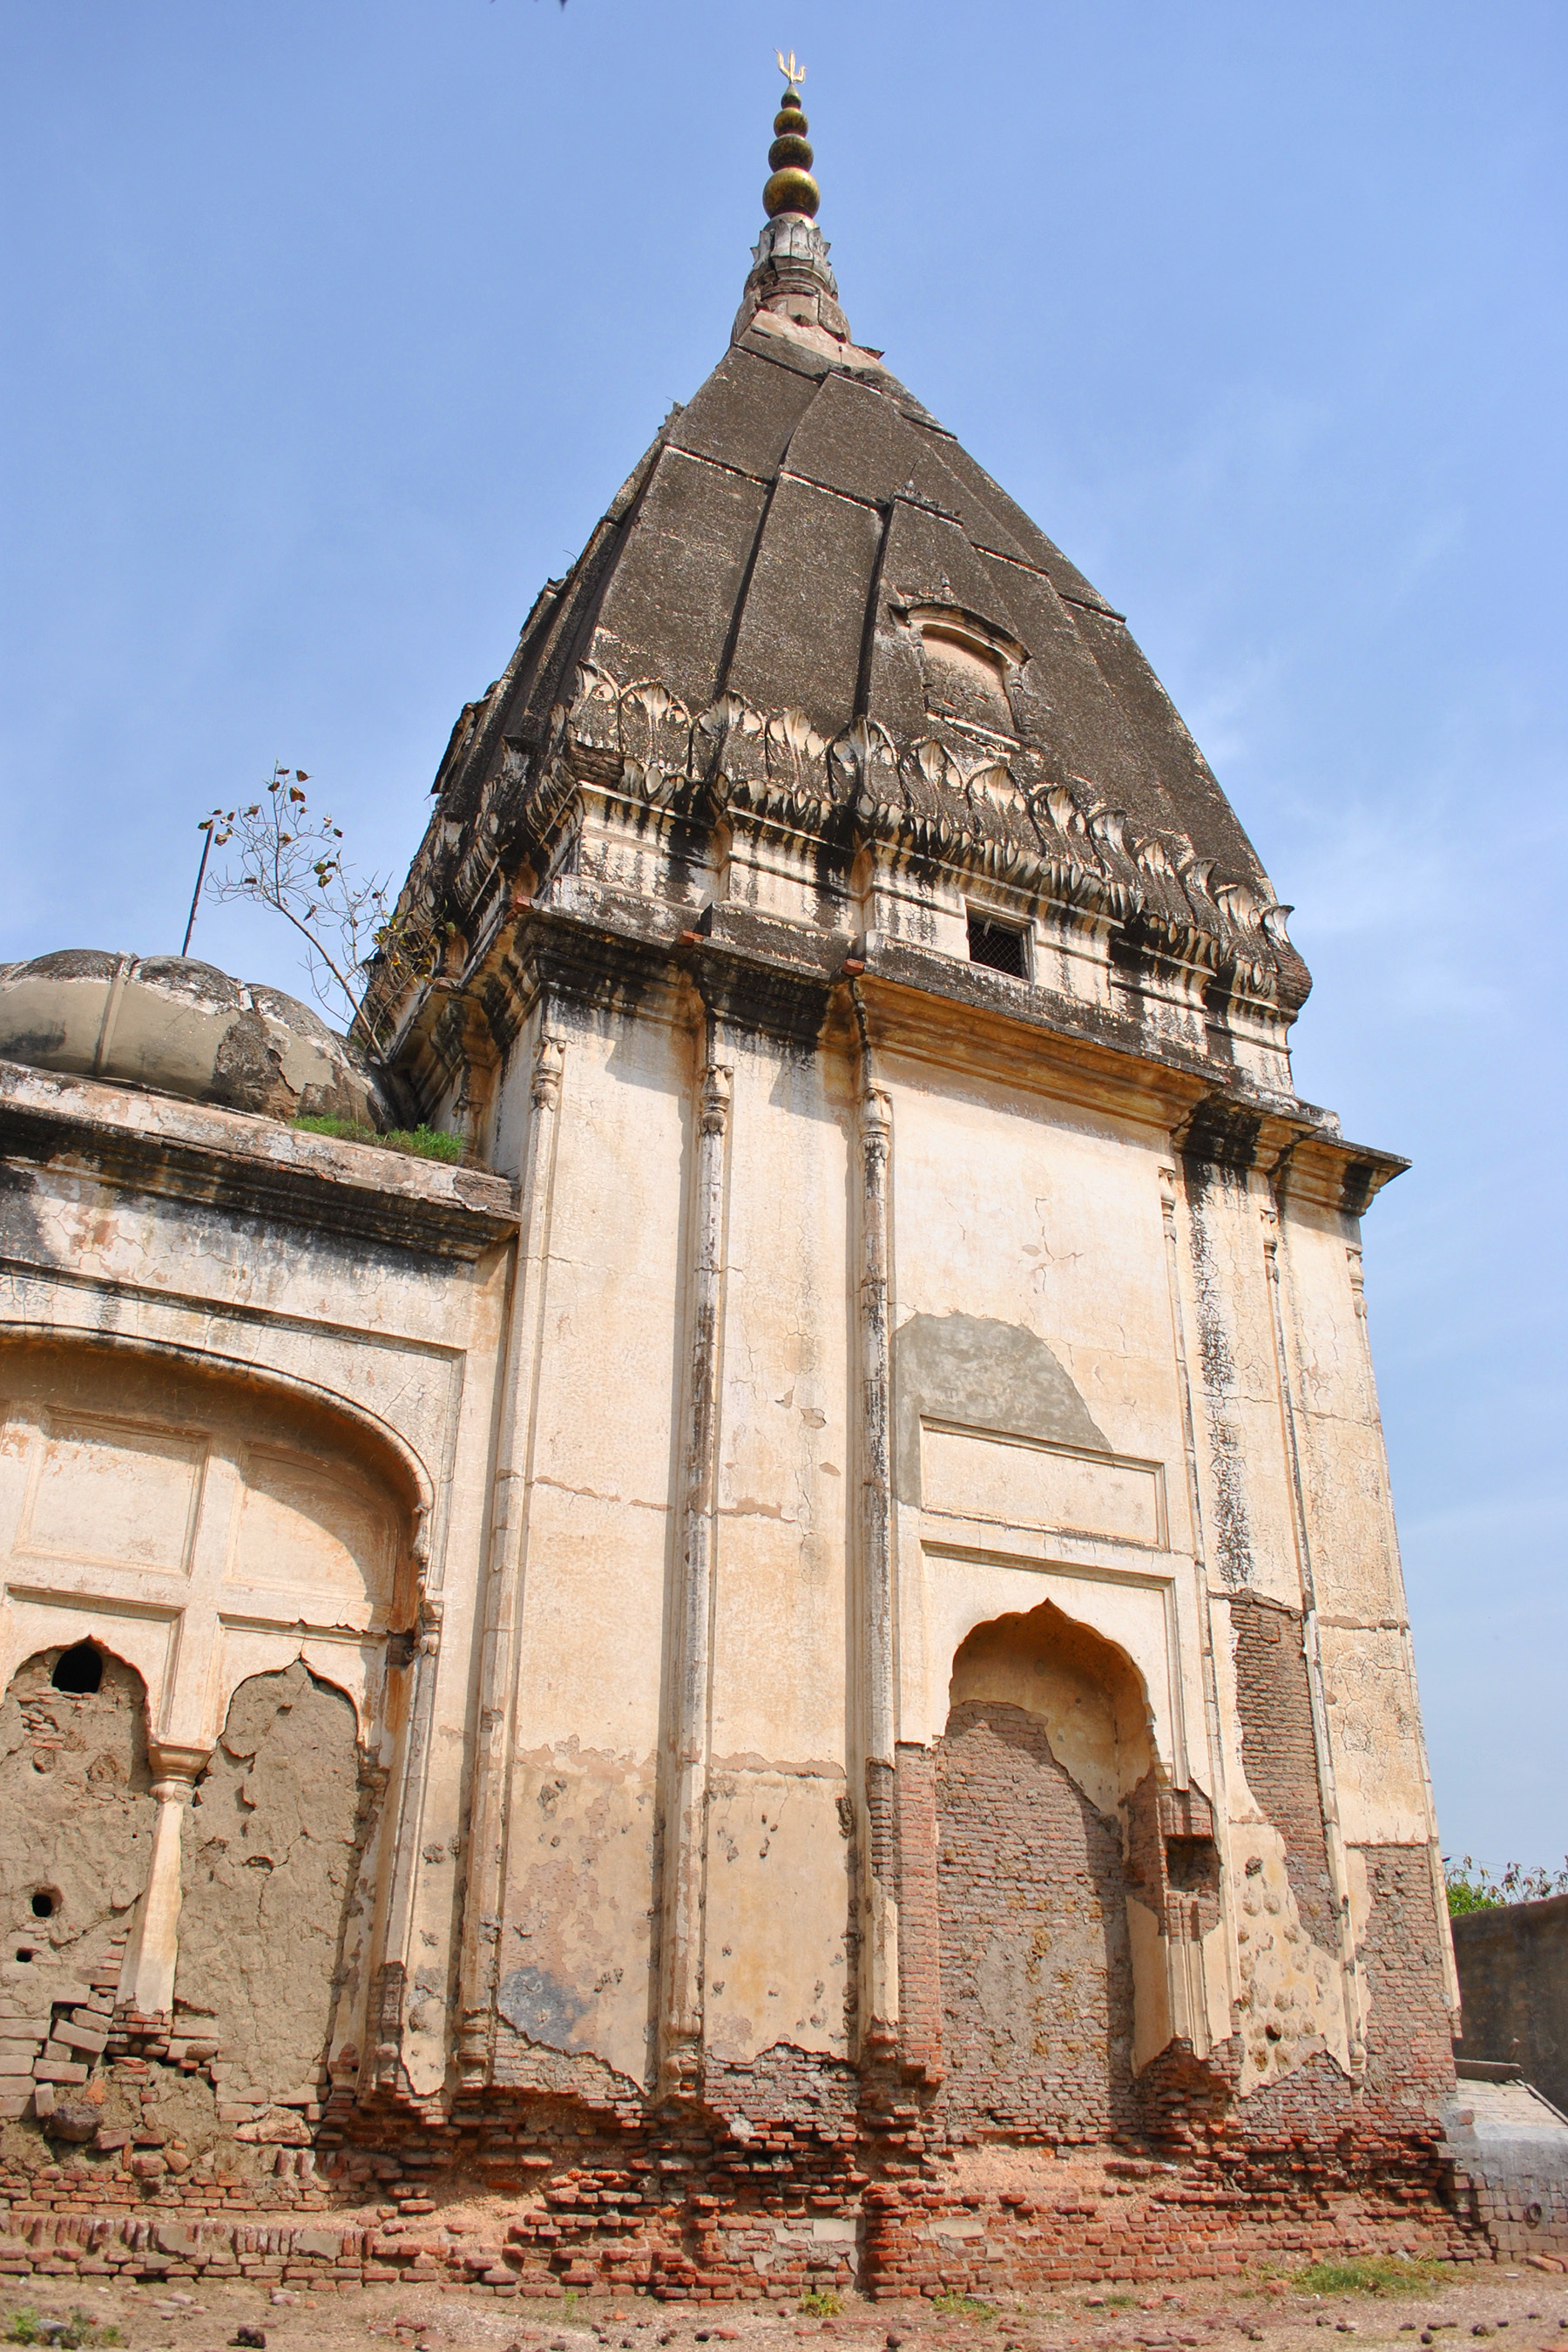 Decades of negligence have eroded the grandeur of superb Hindu architecture.